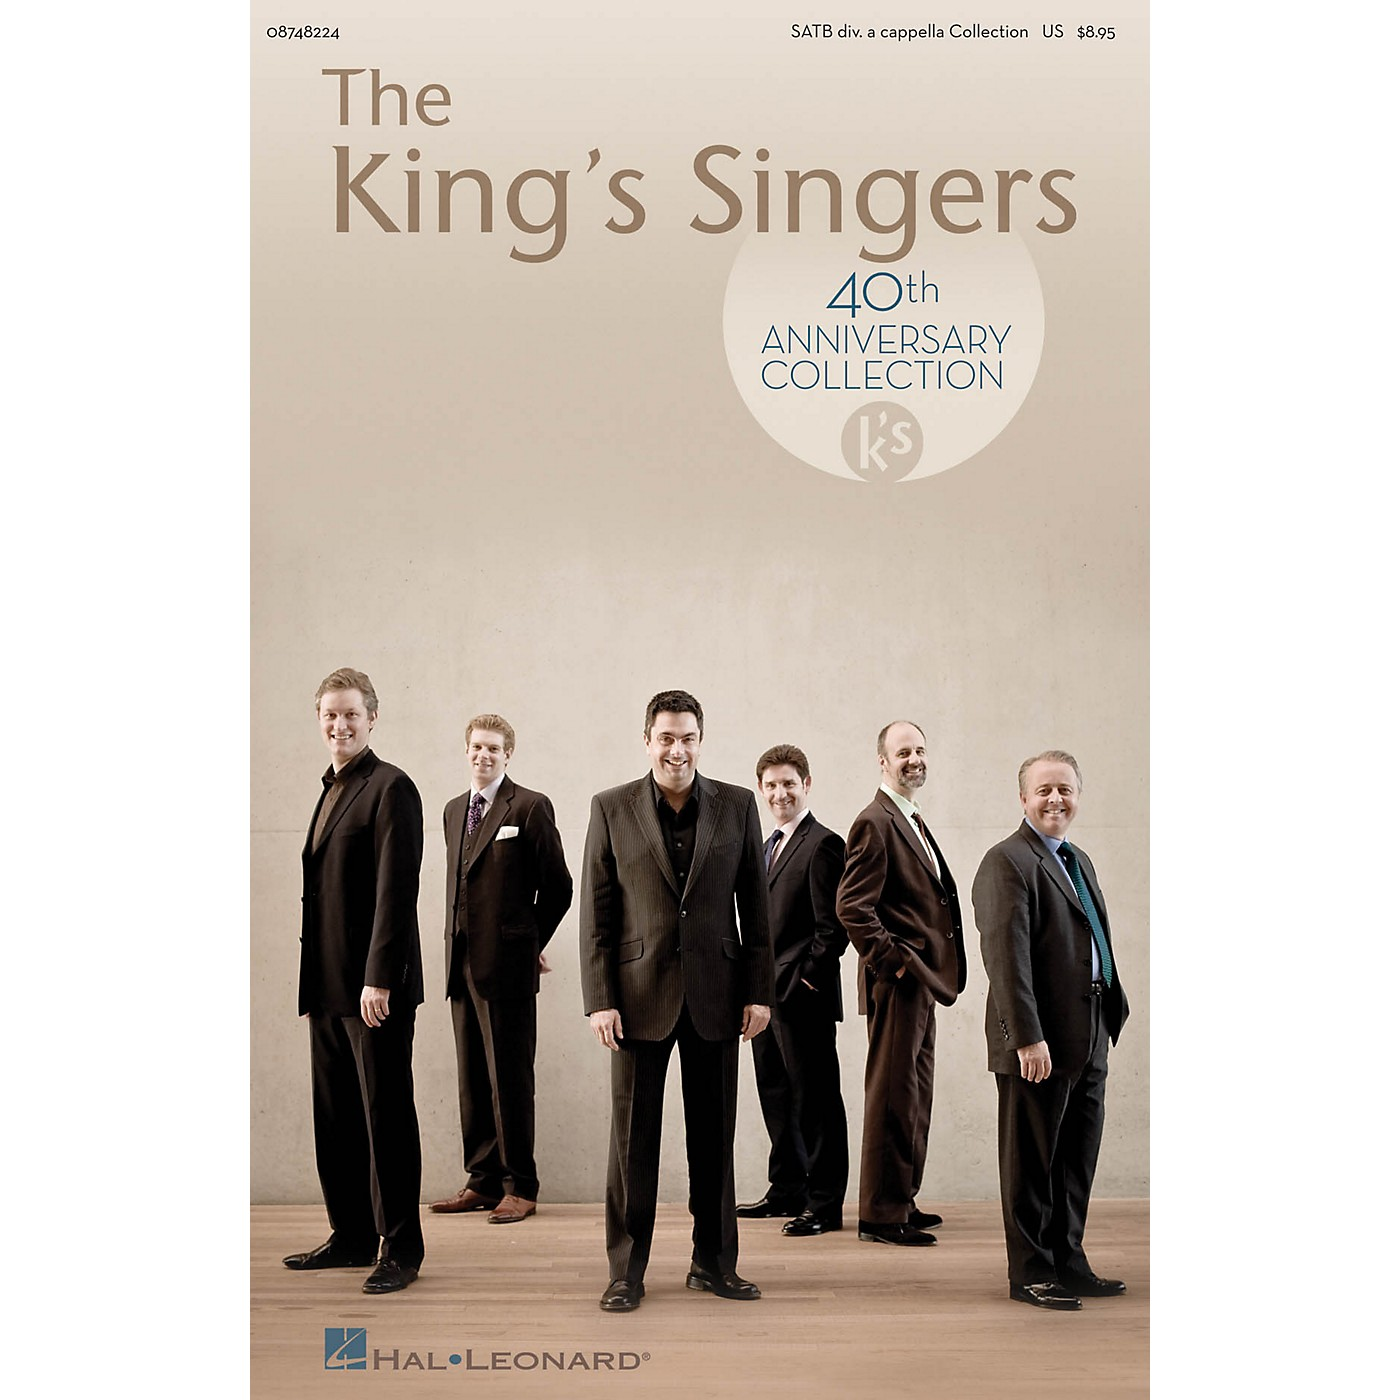 Hal Leonard The King's Singers 40th Anniversary Collection SATB Divisi Collection thumbnail